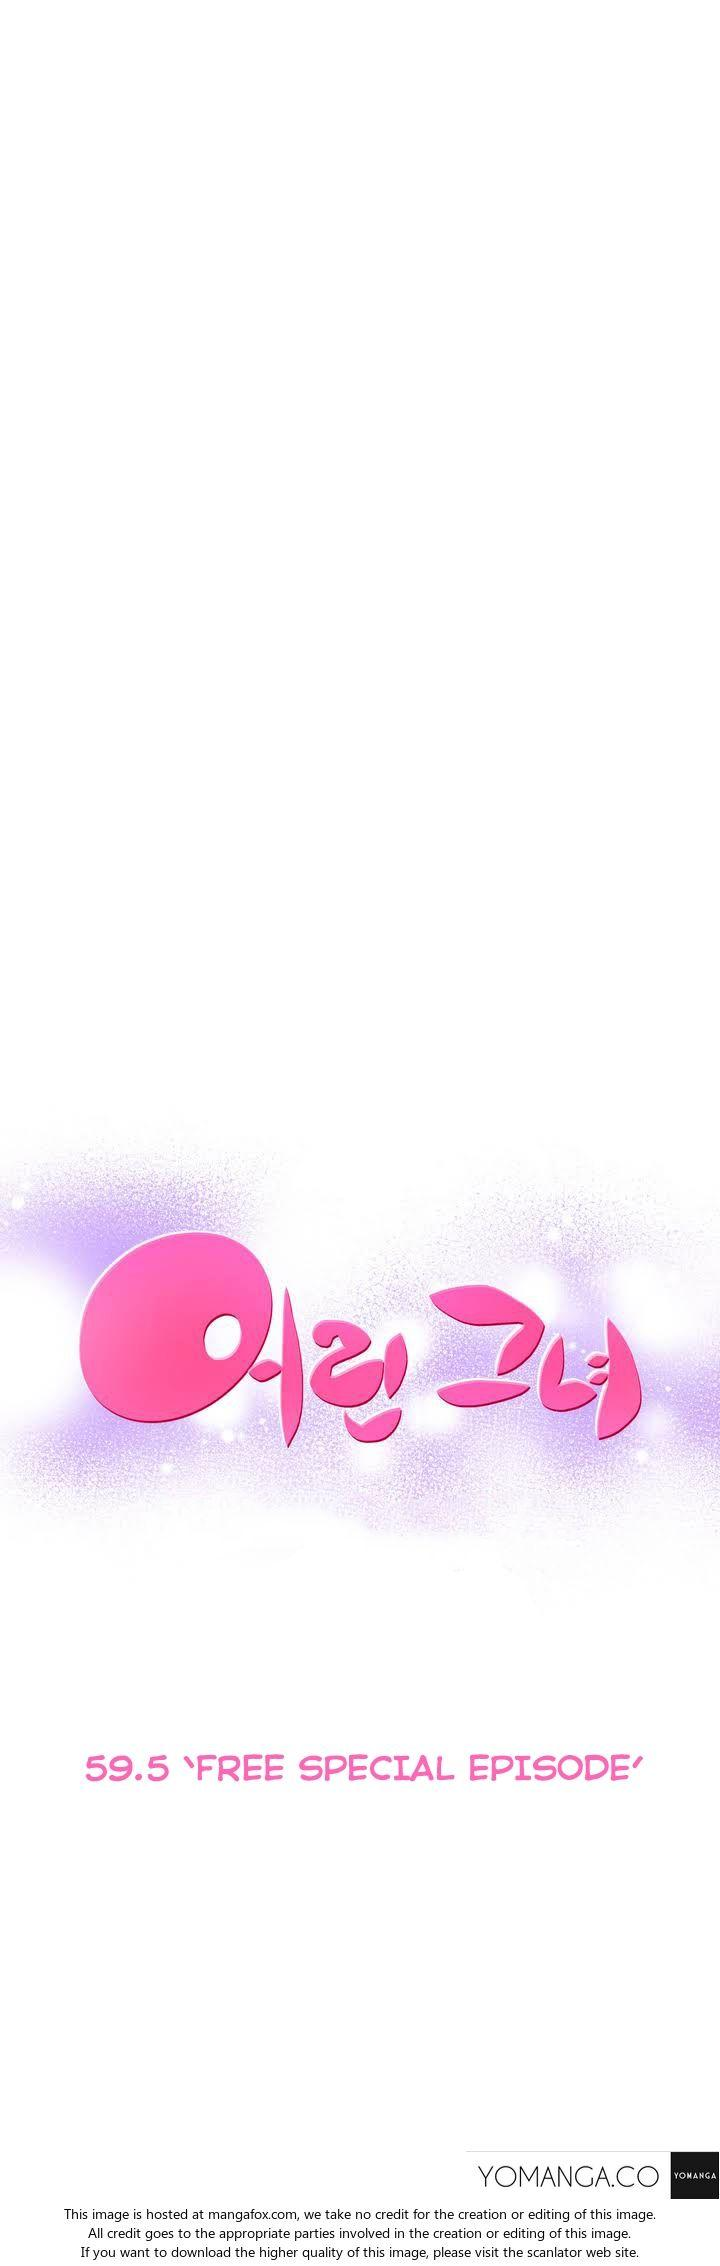 [Donggul Gom] She is Young (English) Part 1/2 1348